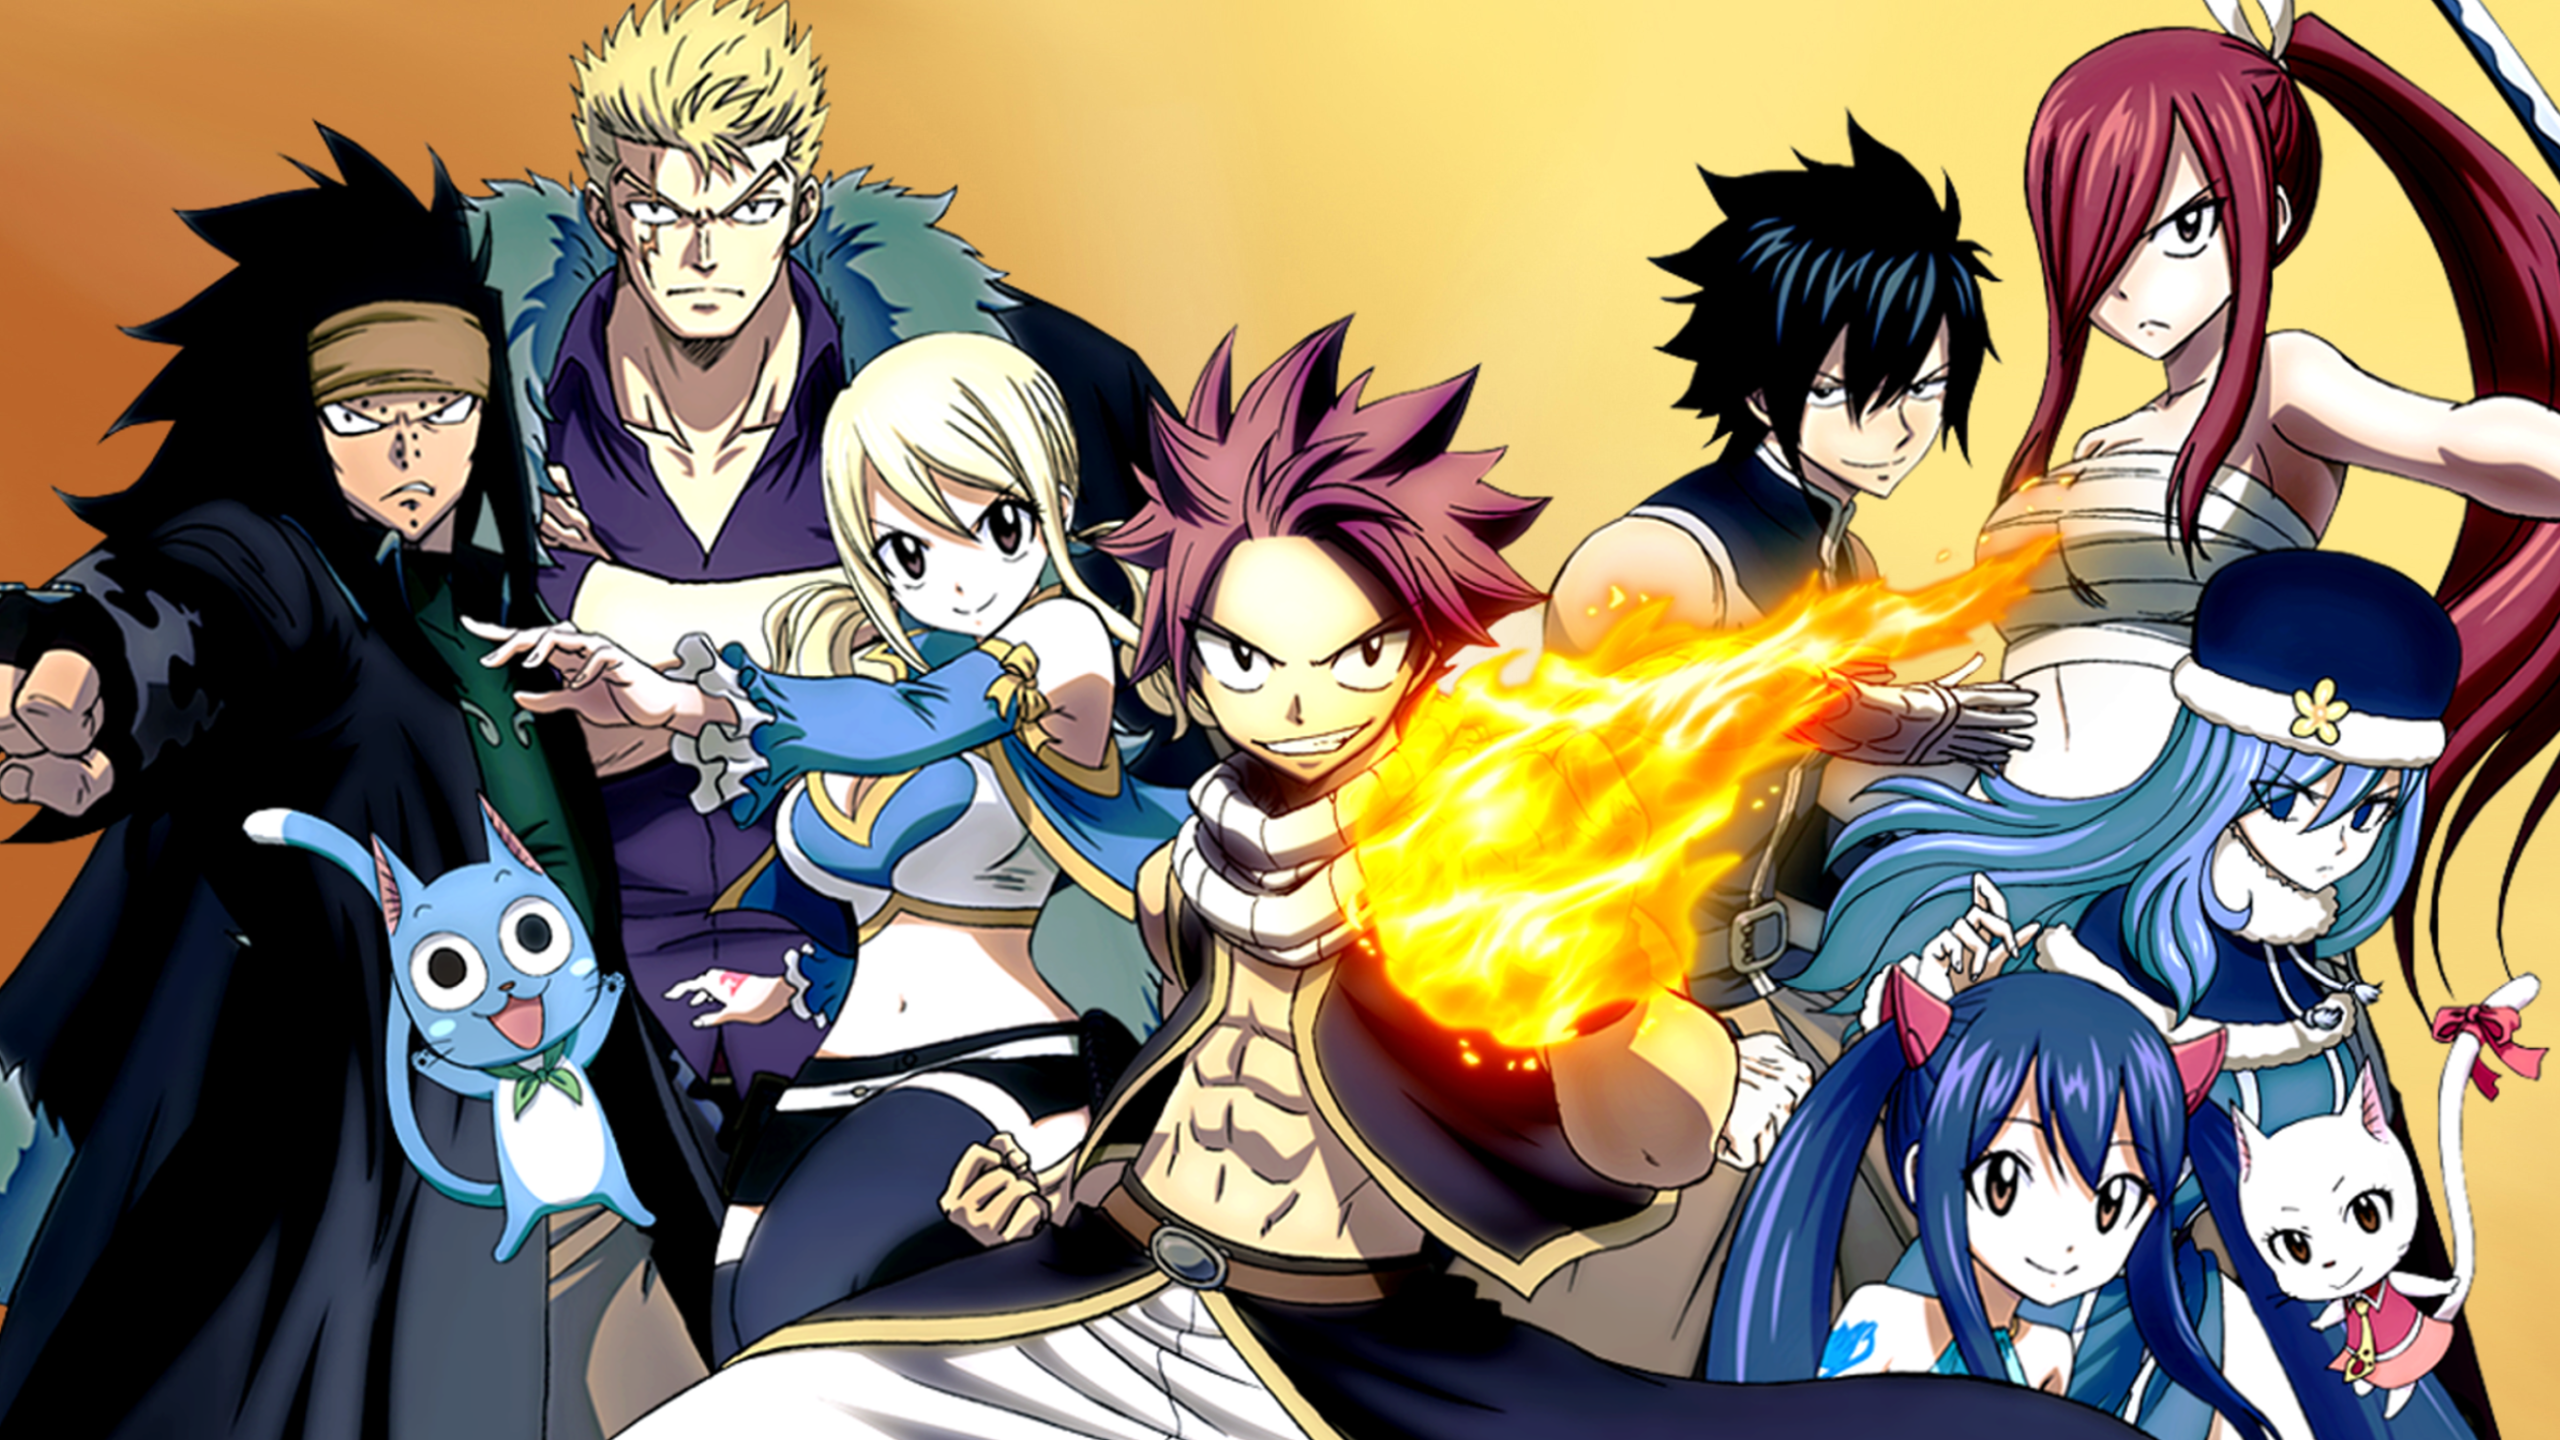 fairy tail background